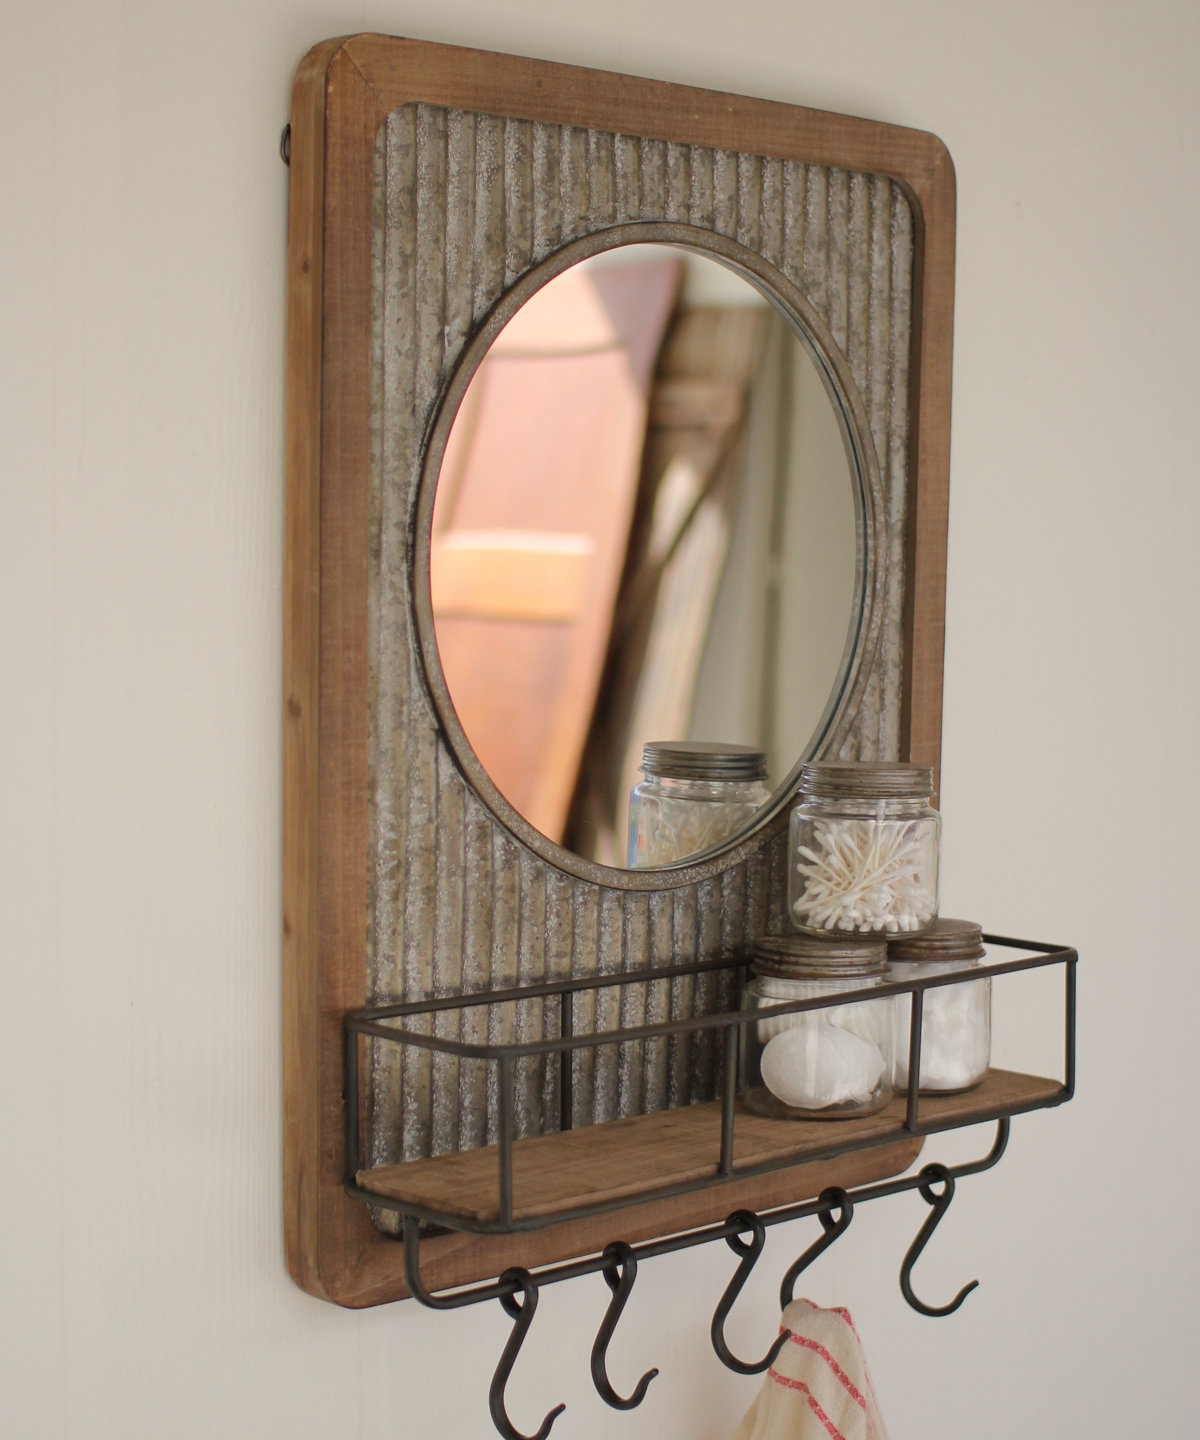 Hallas Wall Organizer Mirrors Pertaining To Most Current Adalheid Corrugated Wood Shelf Accent Mirror (View 8 of 20)